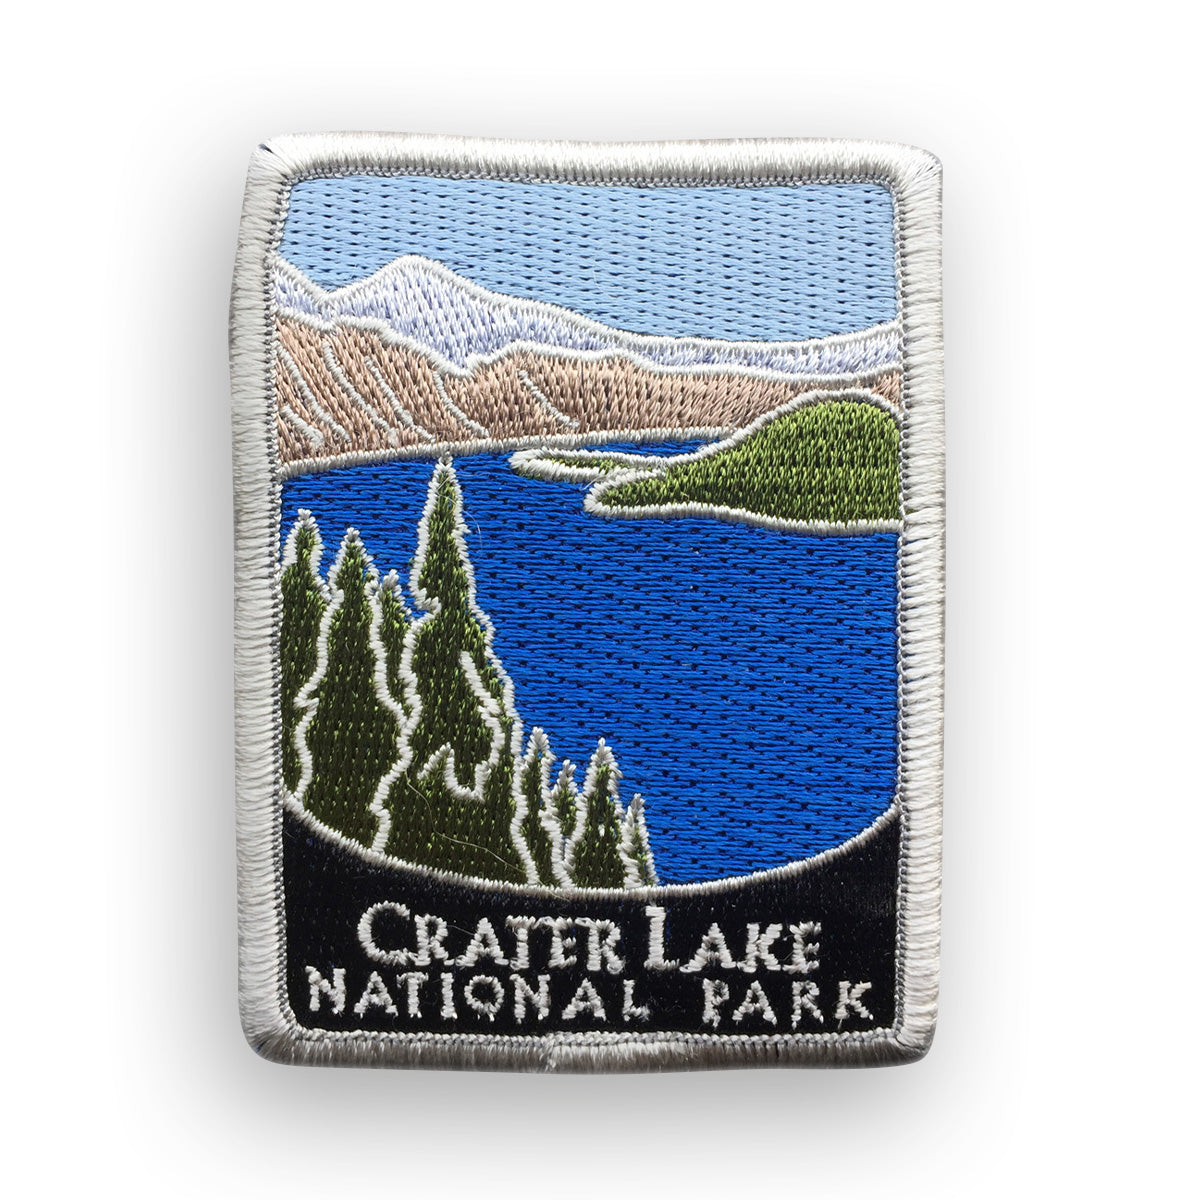 Crater Lake National Park Patch